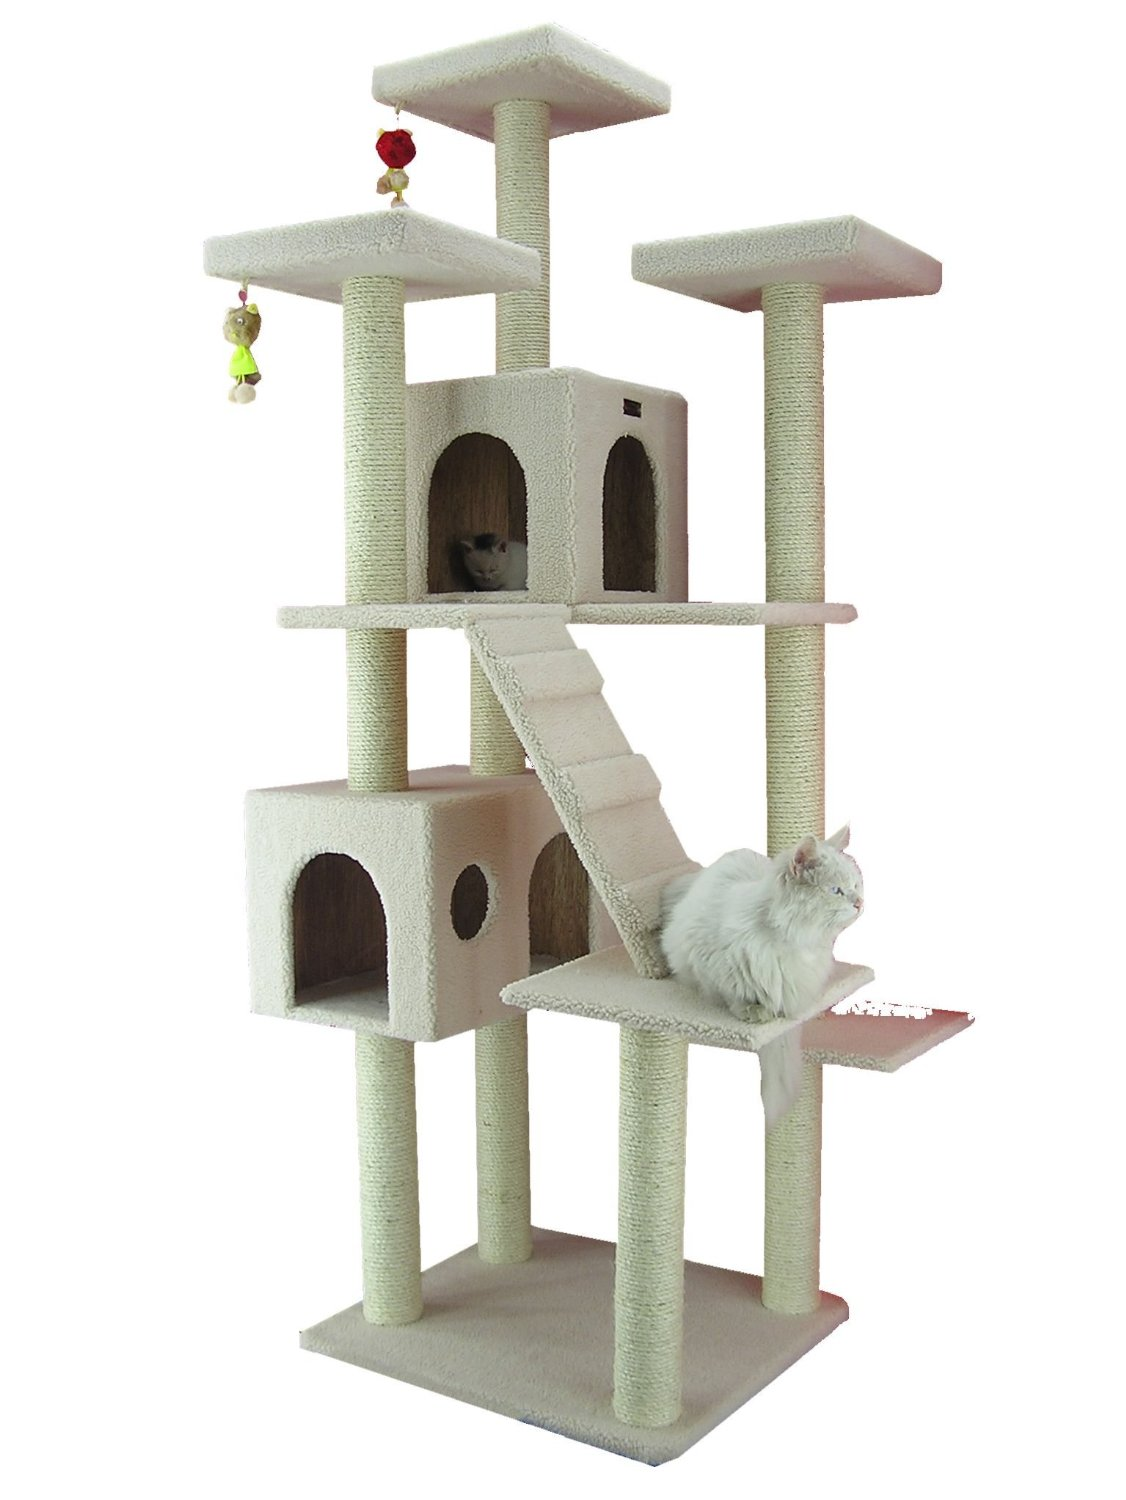 The Armarkat Classic Cat Tree House with Multiple Perches